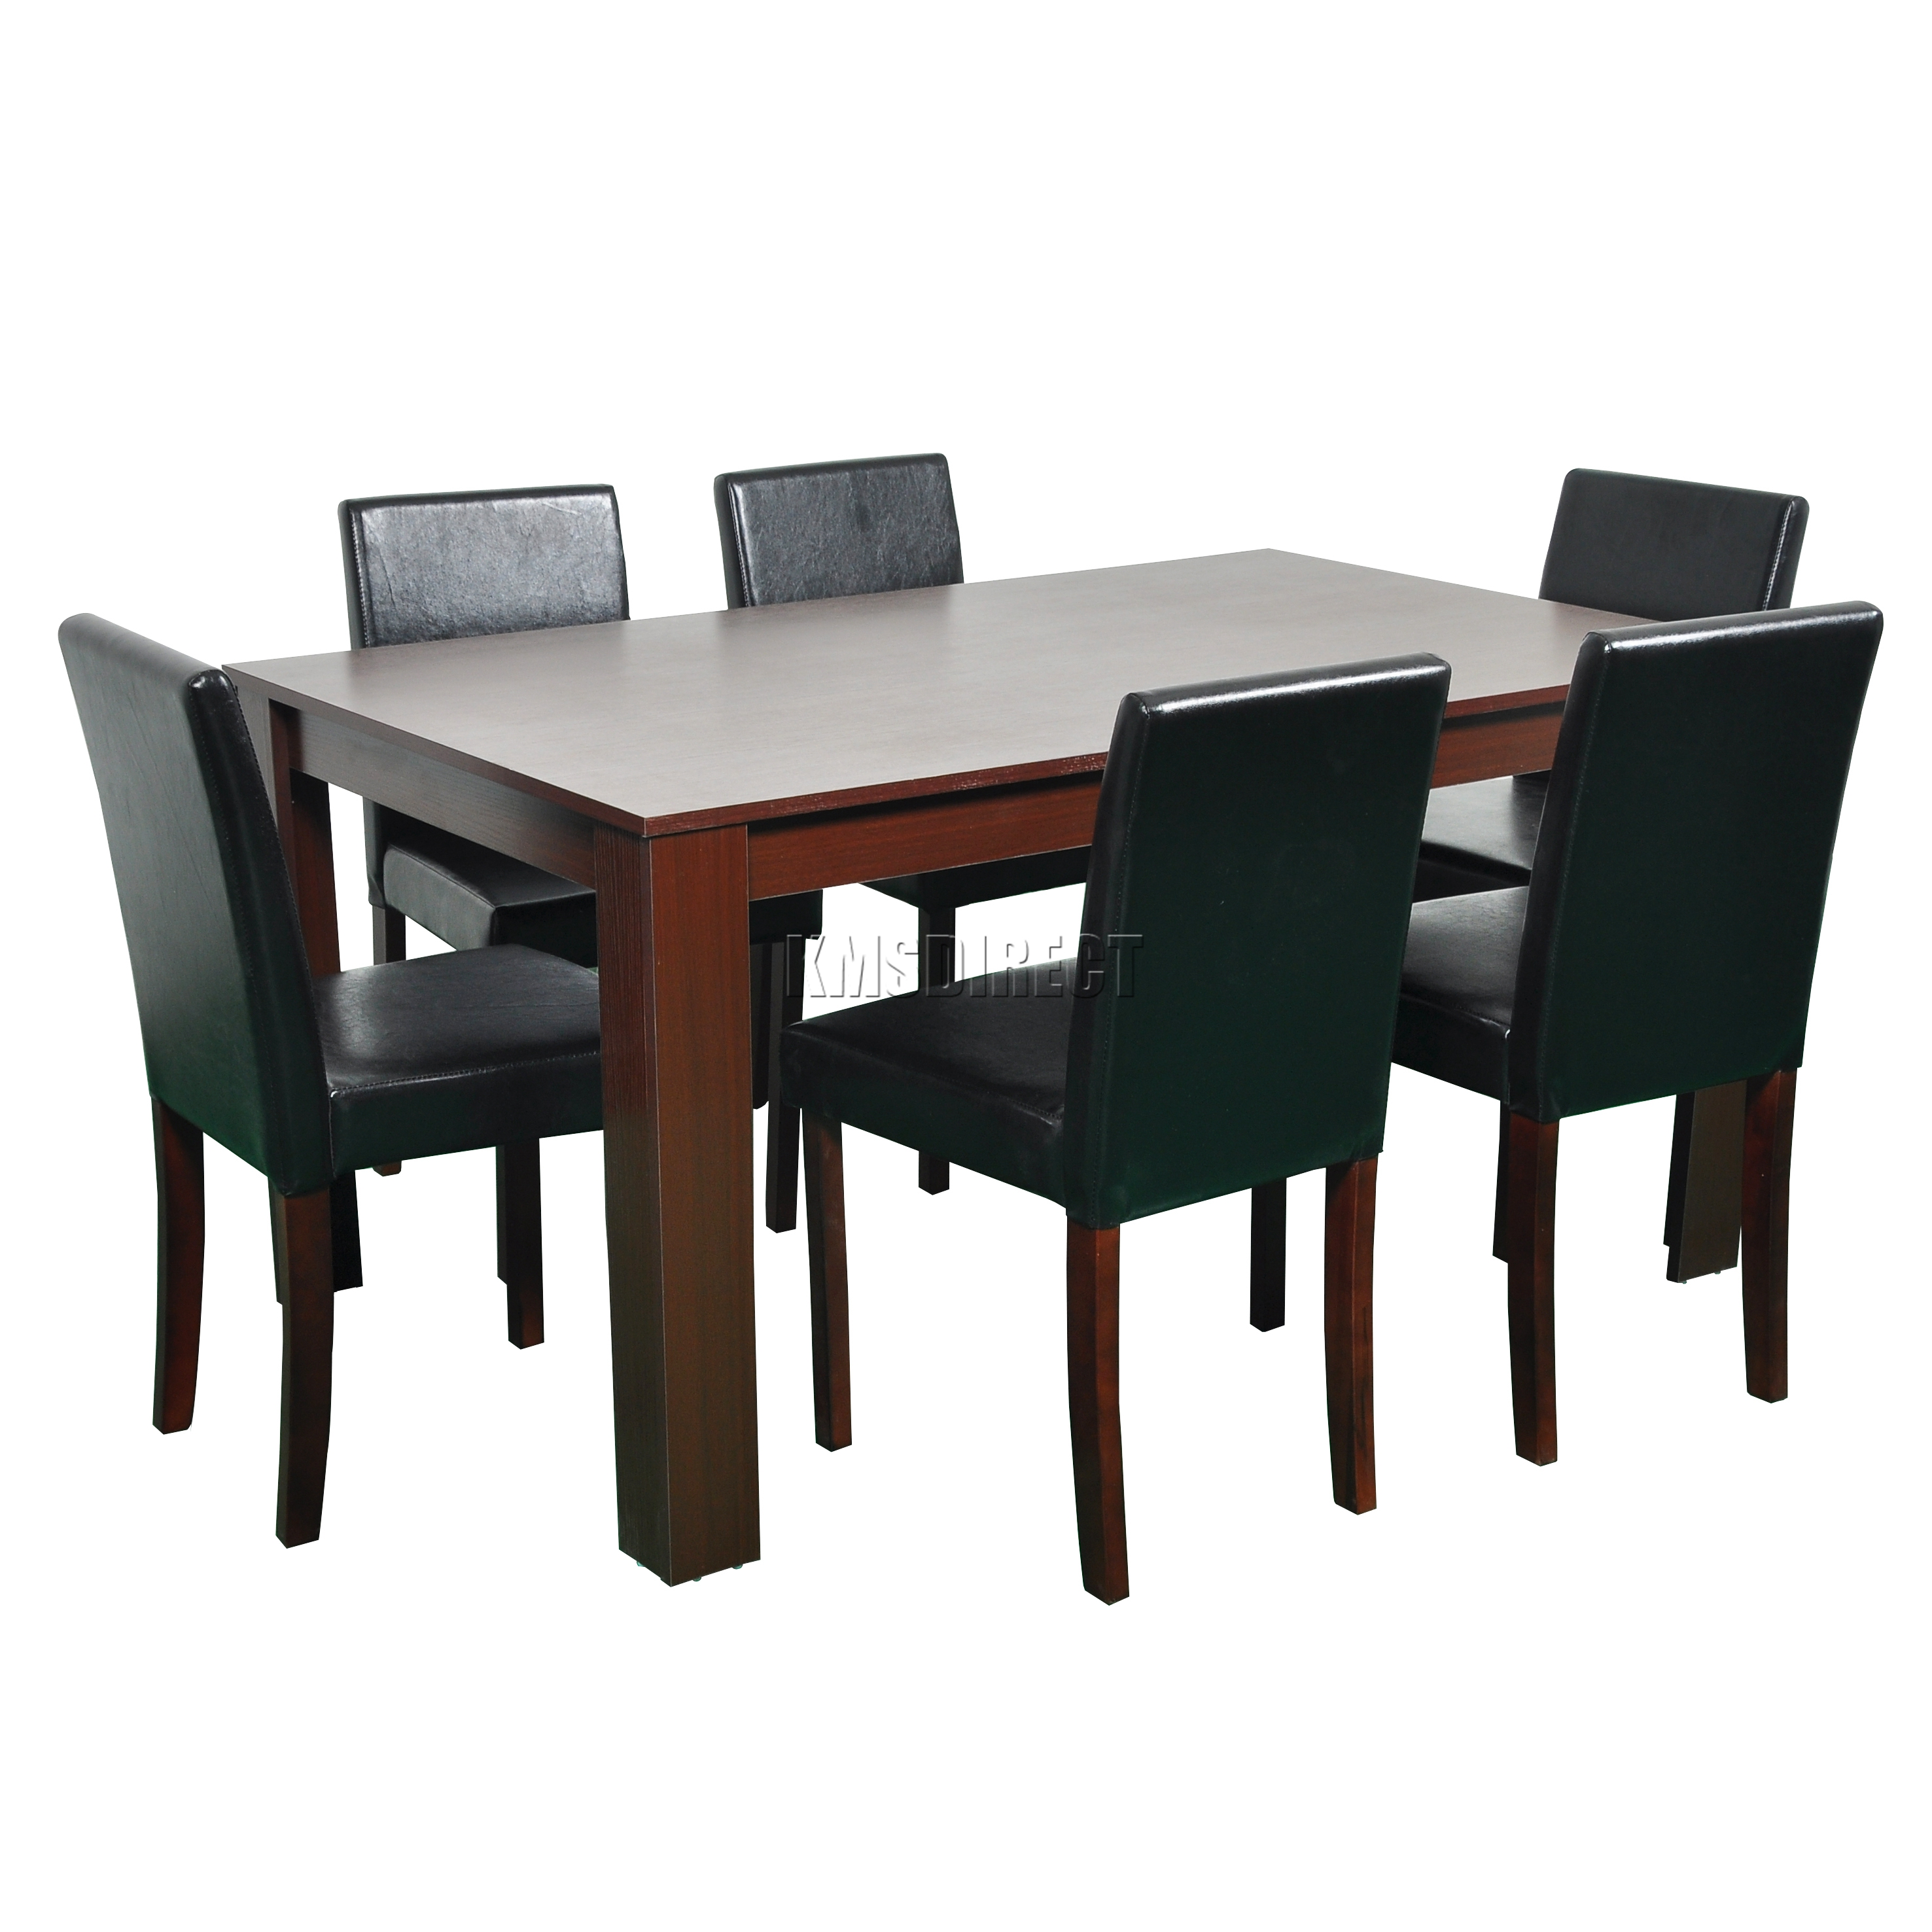 Foxhunter wooden dining table and 6 pu faux leather chairs for Wooden dining table and chairs